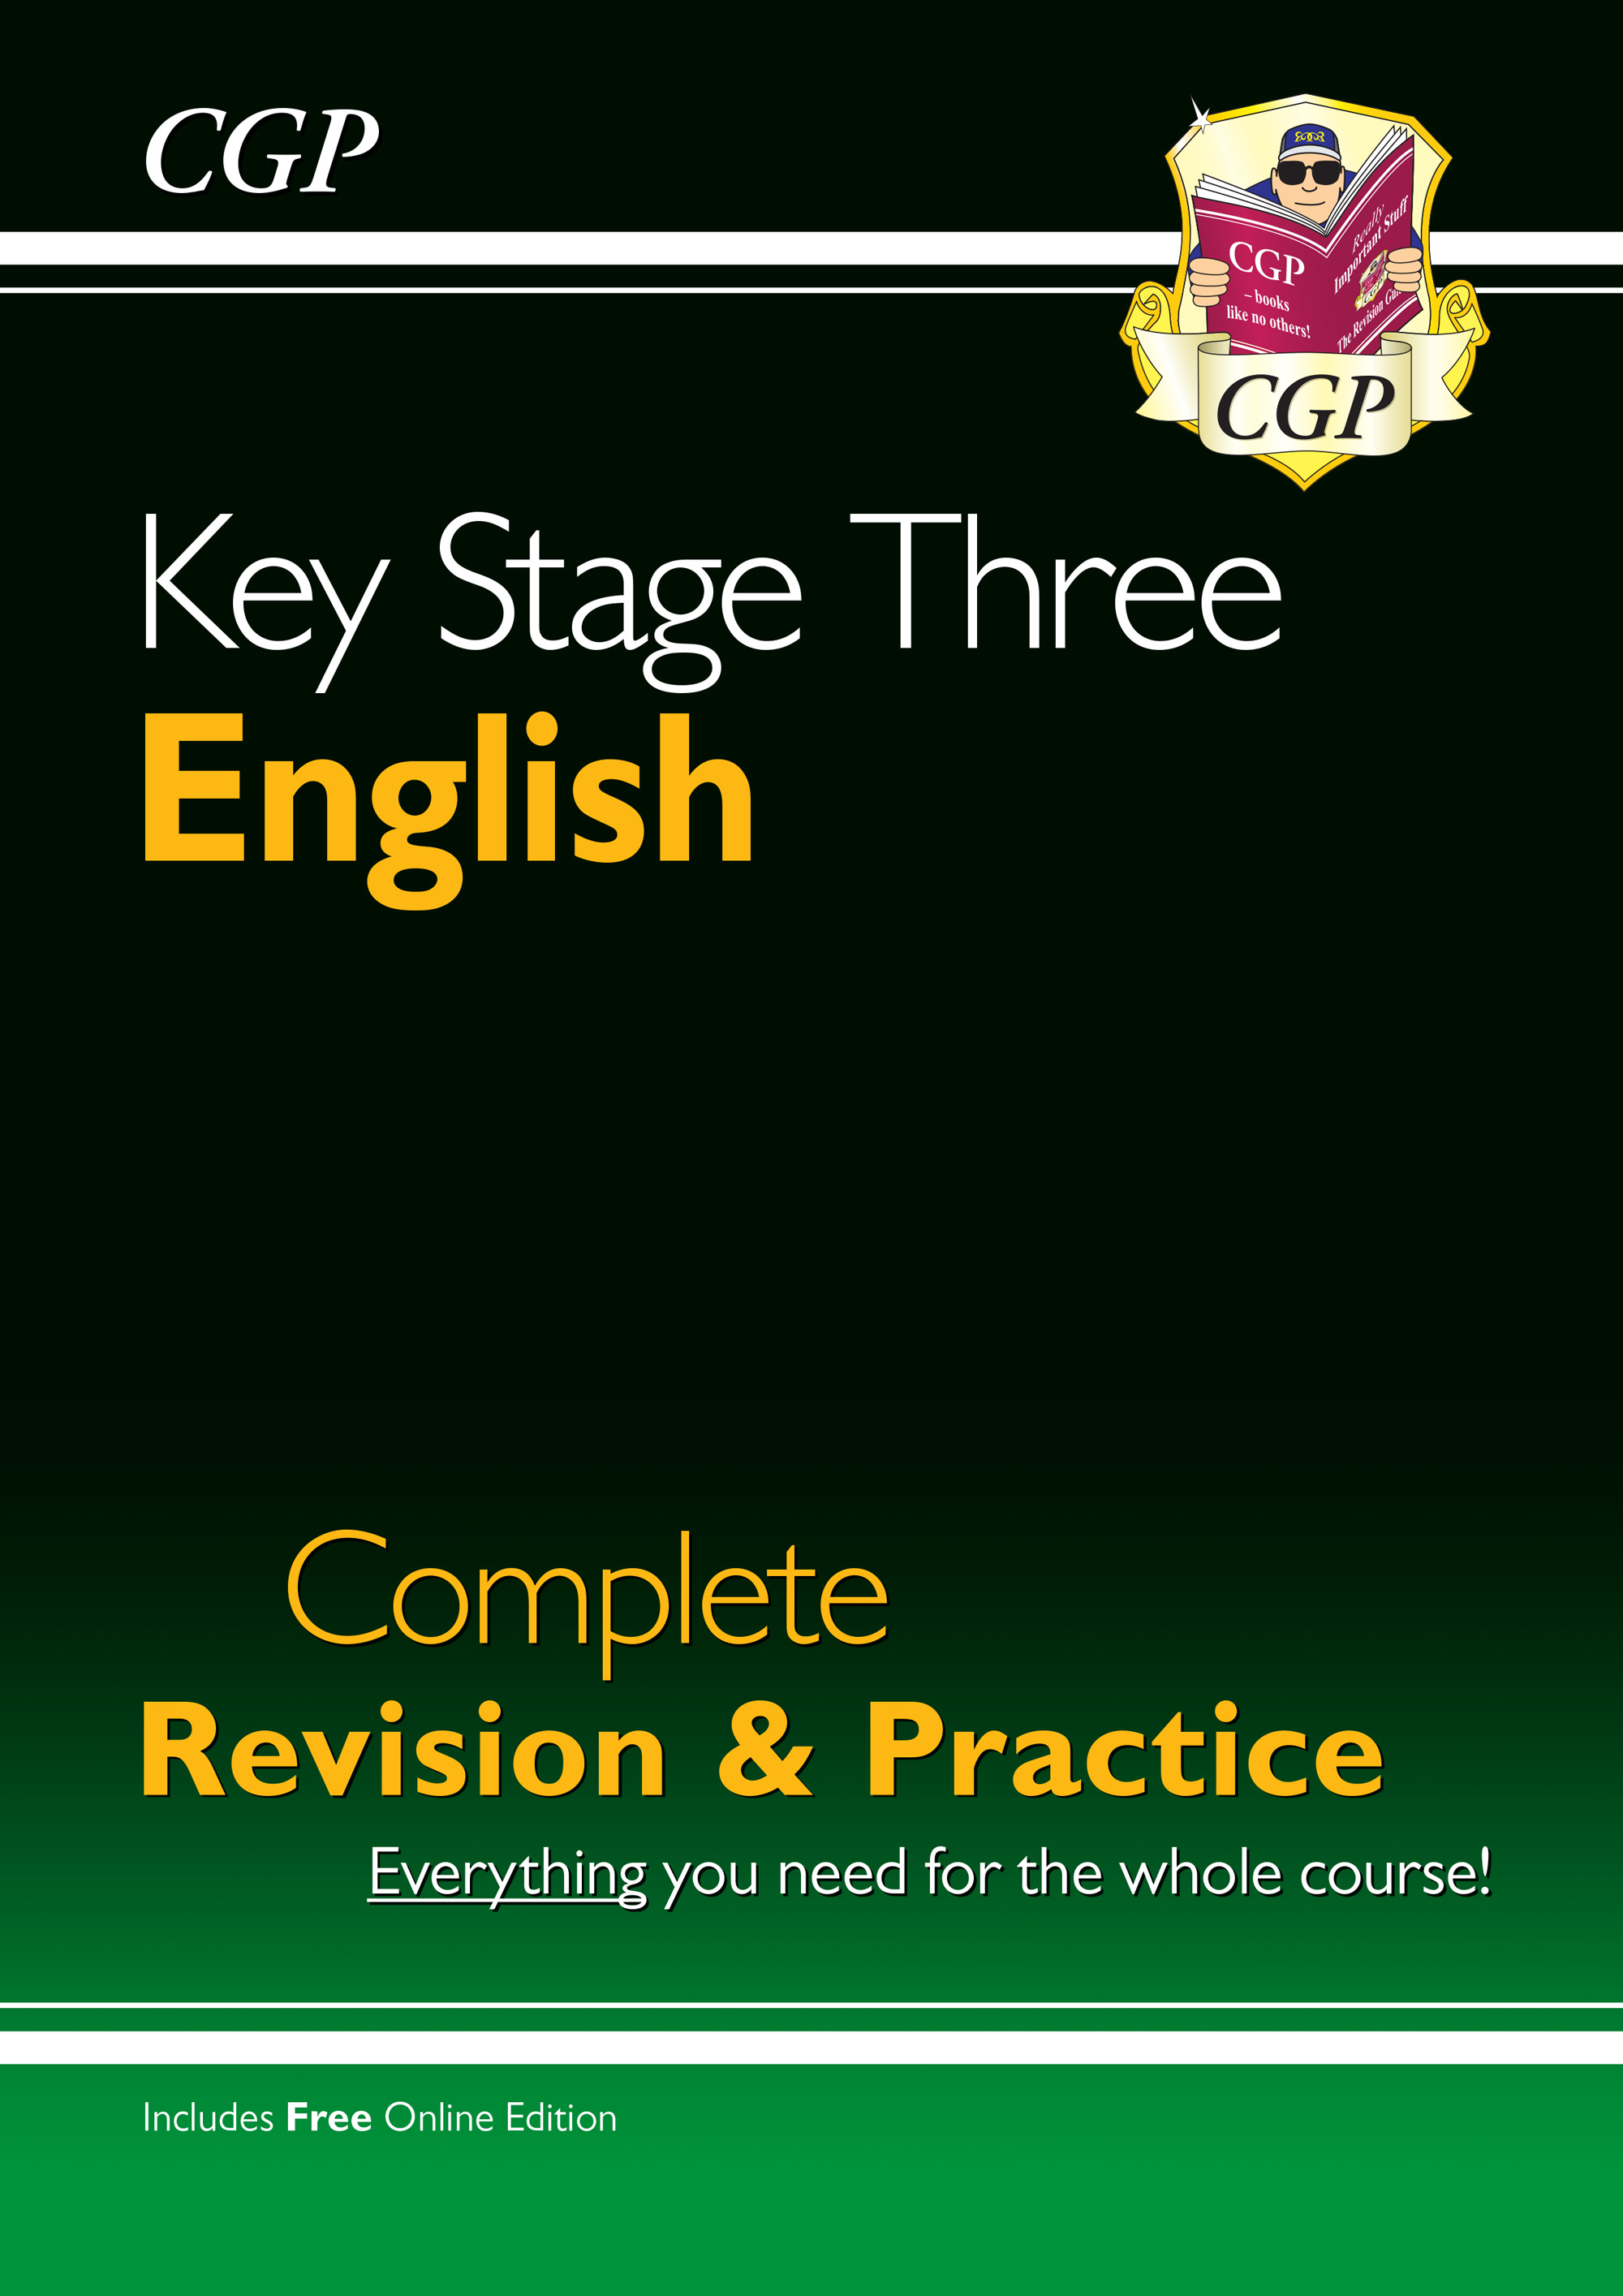 EHS36 - KS3 English Complete Revision & Practice (with Online Edition)